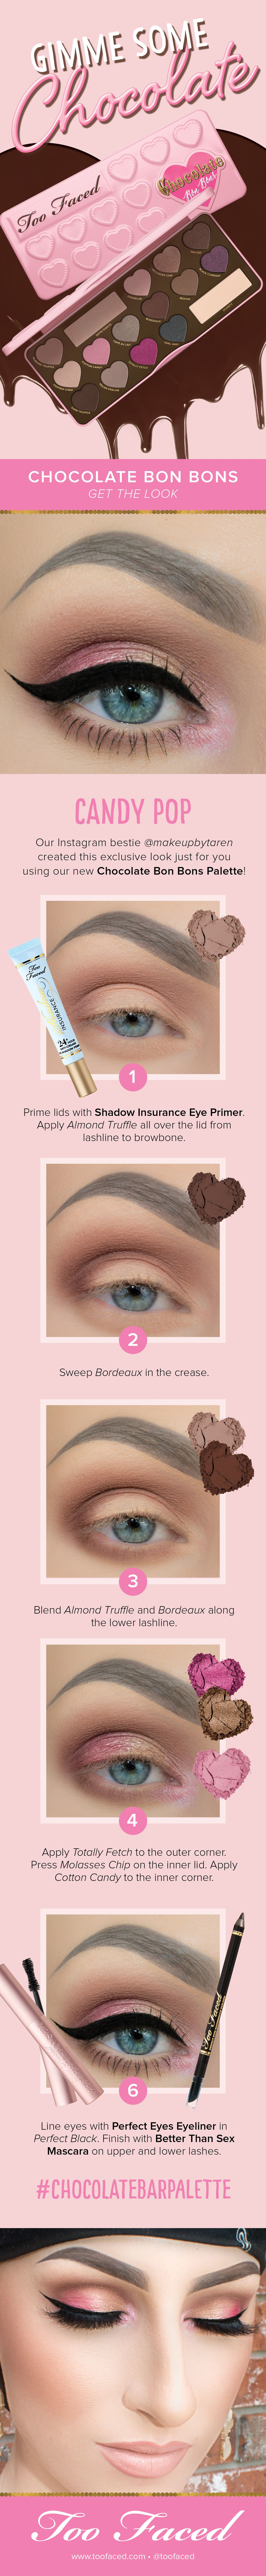 Chocolate Bon Bons is the third palette in the #TooFaced bestselling Chocolate Bar Eye Shadow Collection. The looks are limitless. - Too Faced Cosmetics